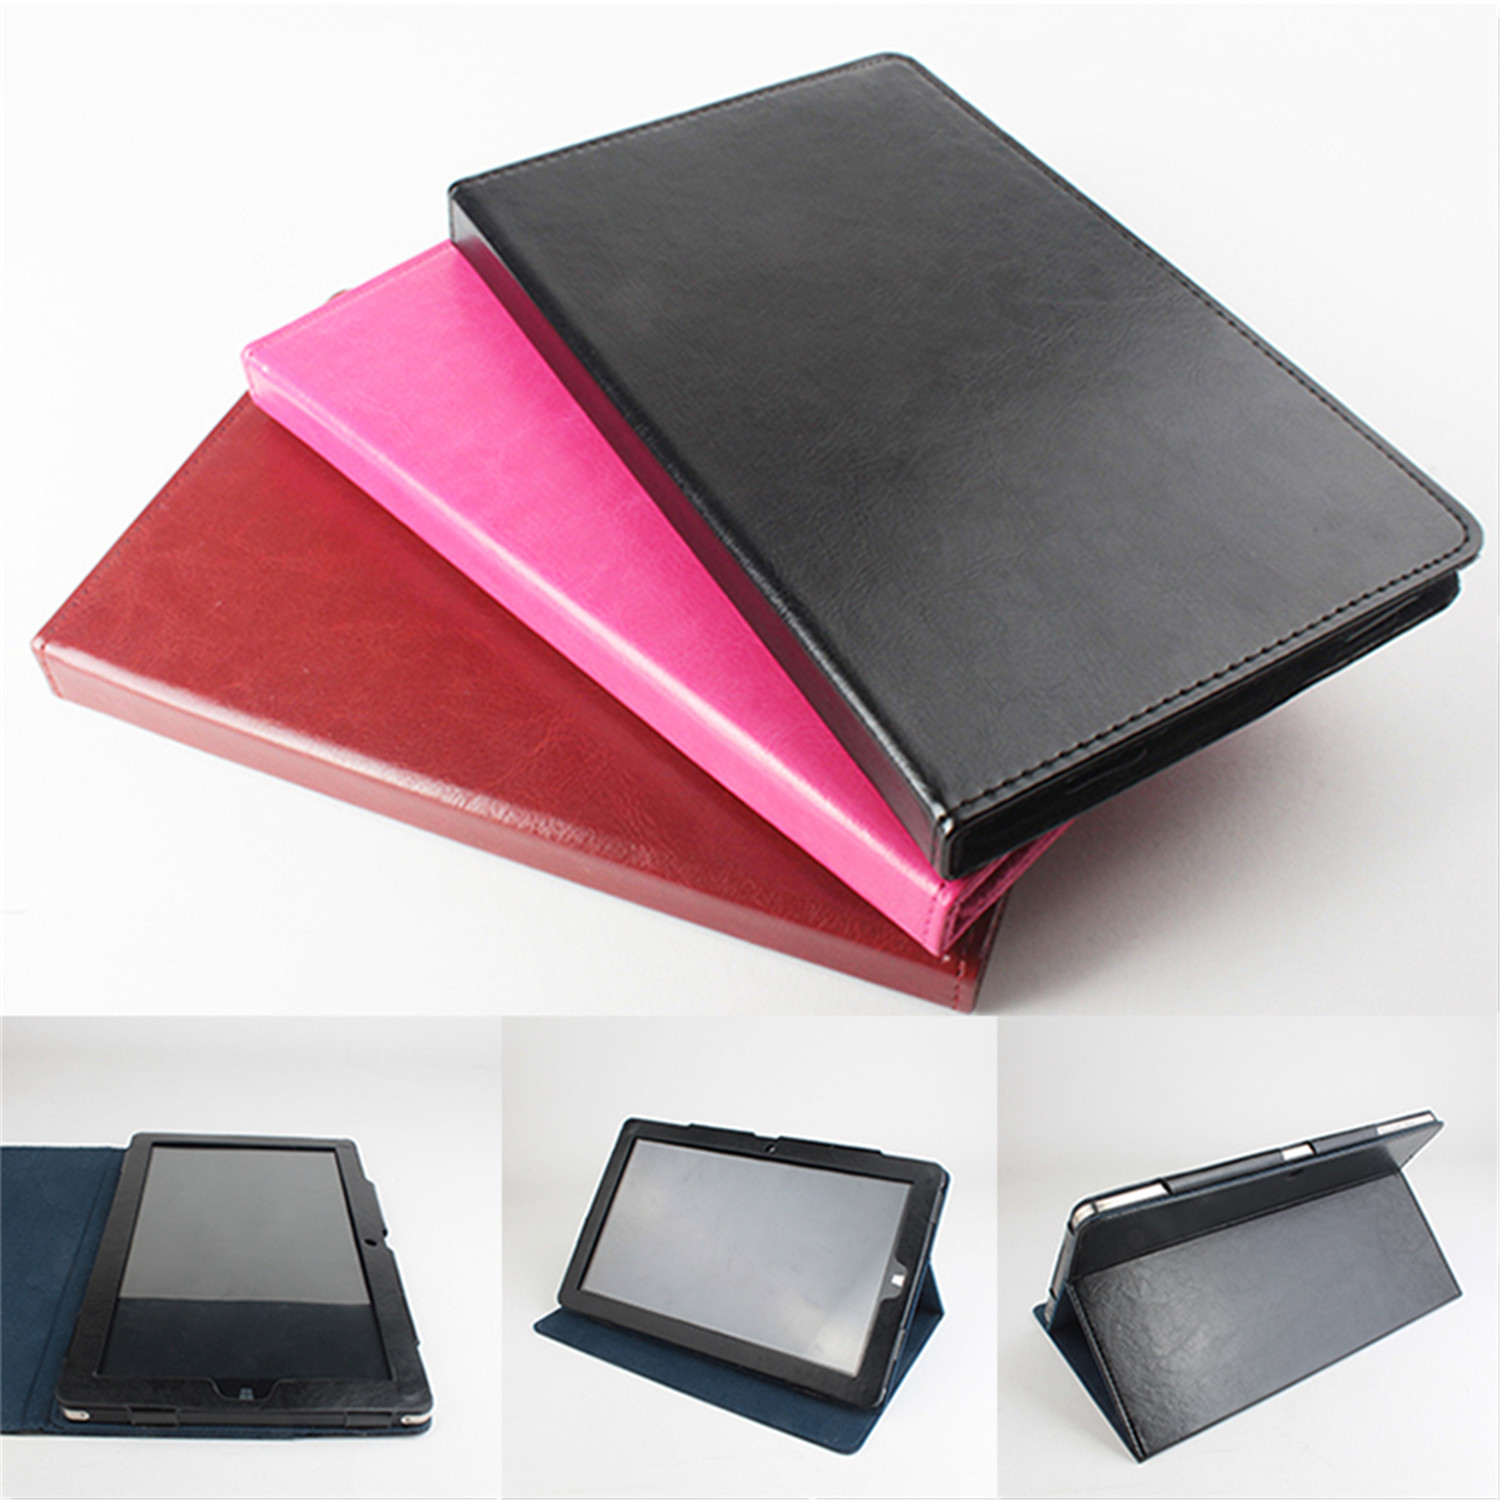 Leather Protective Cover with Stand Function for CHUWI Vi10 Tablet PC  Red